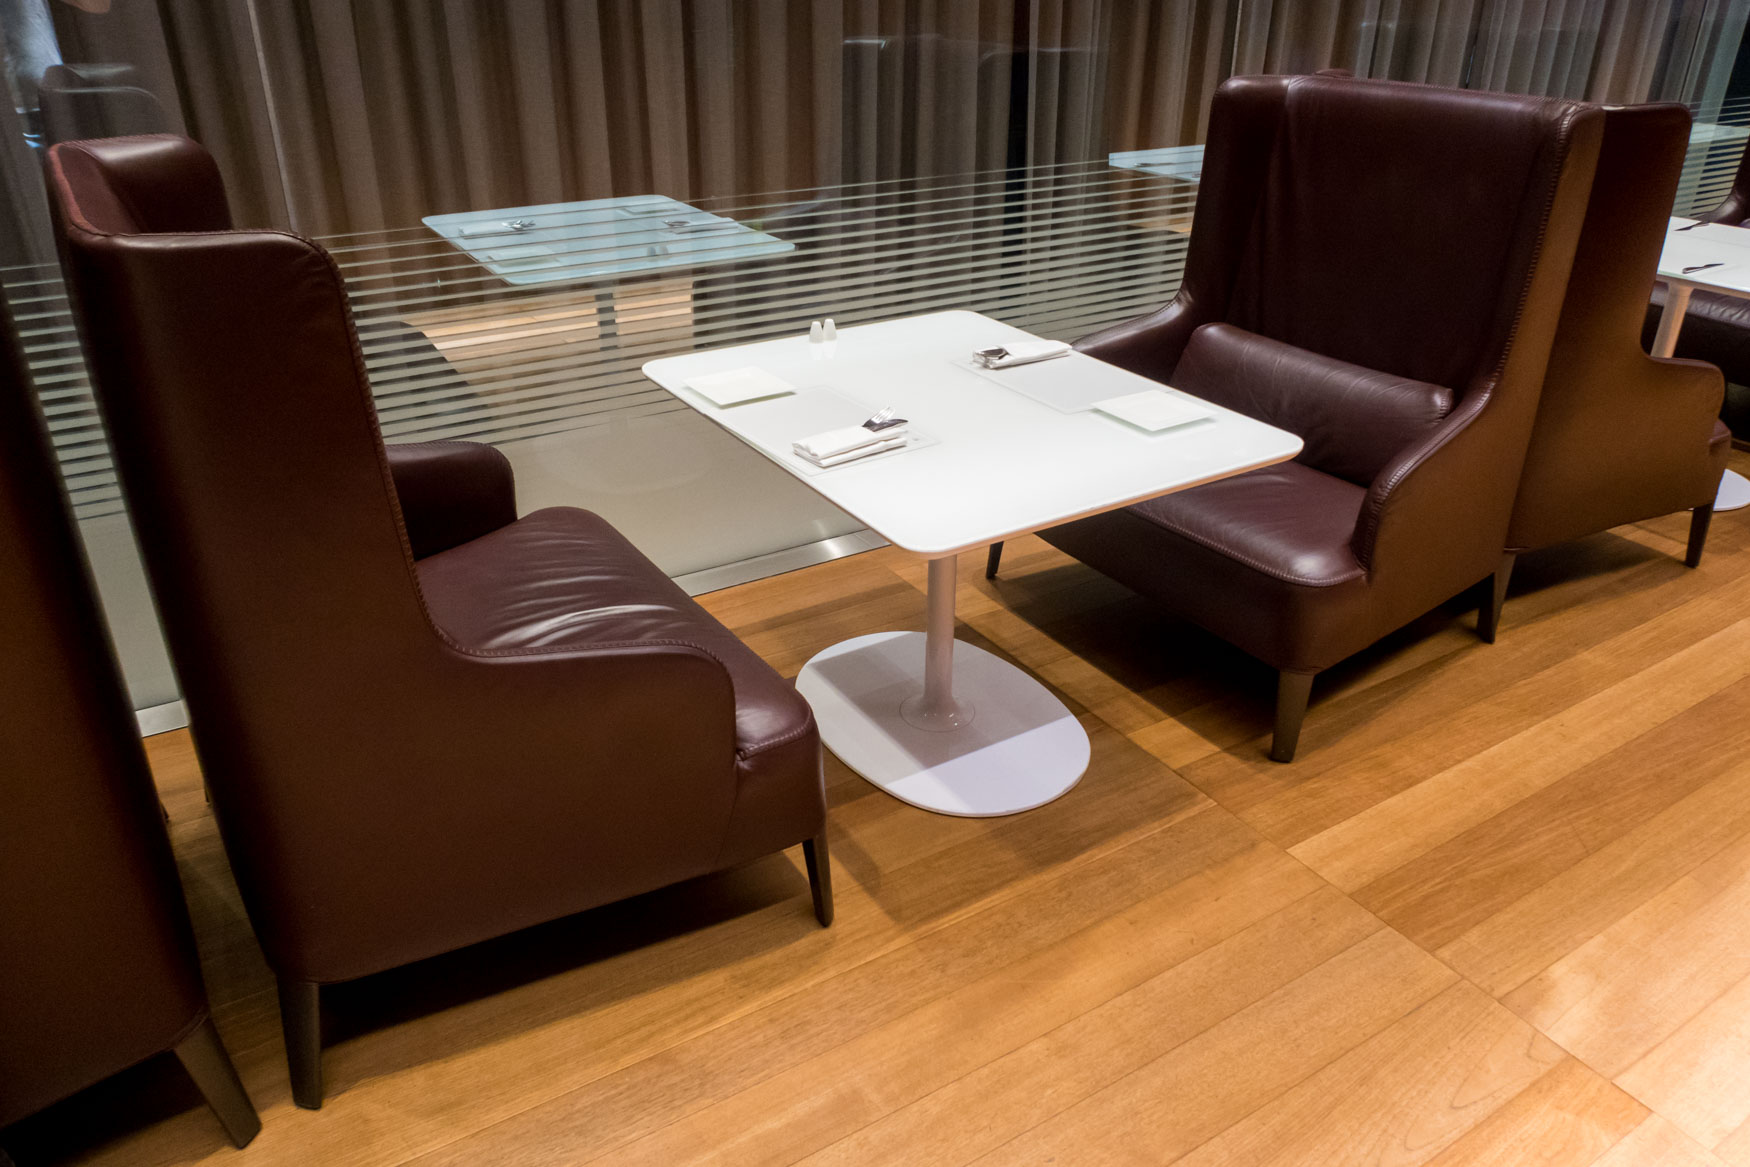 Restaurant Seats in Qatar's Lounge